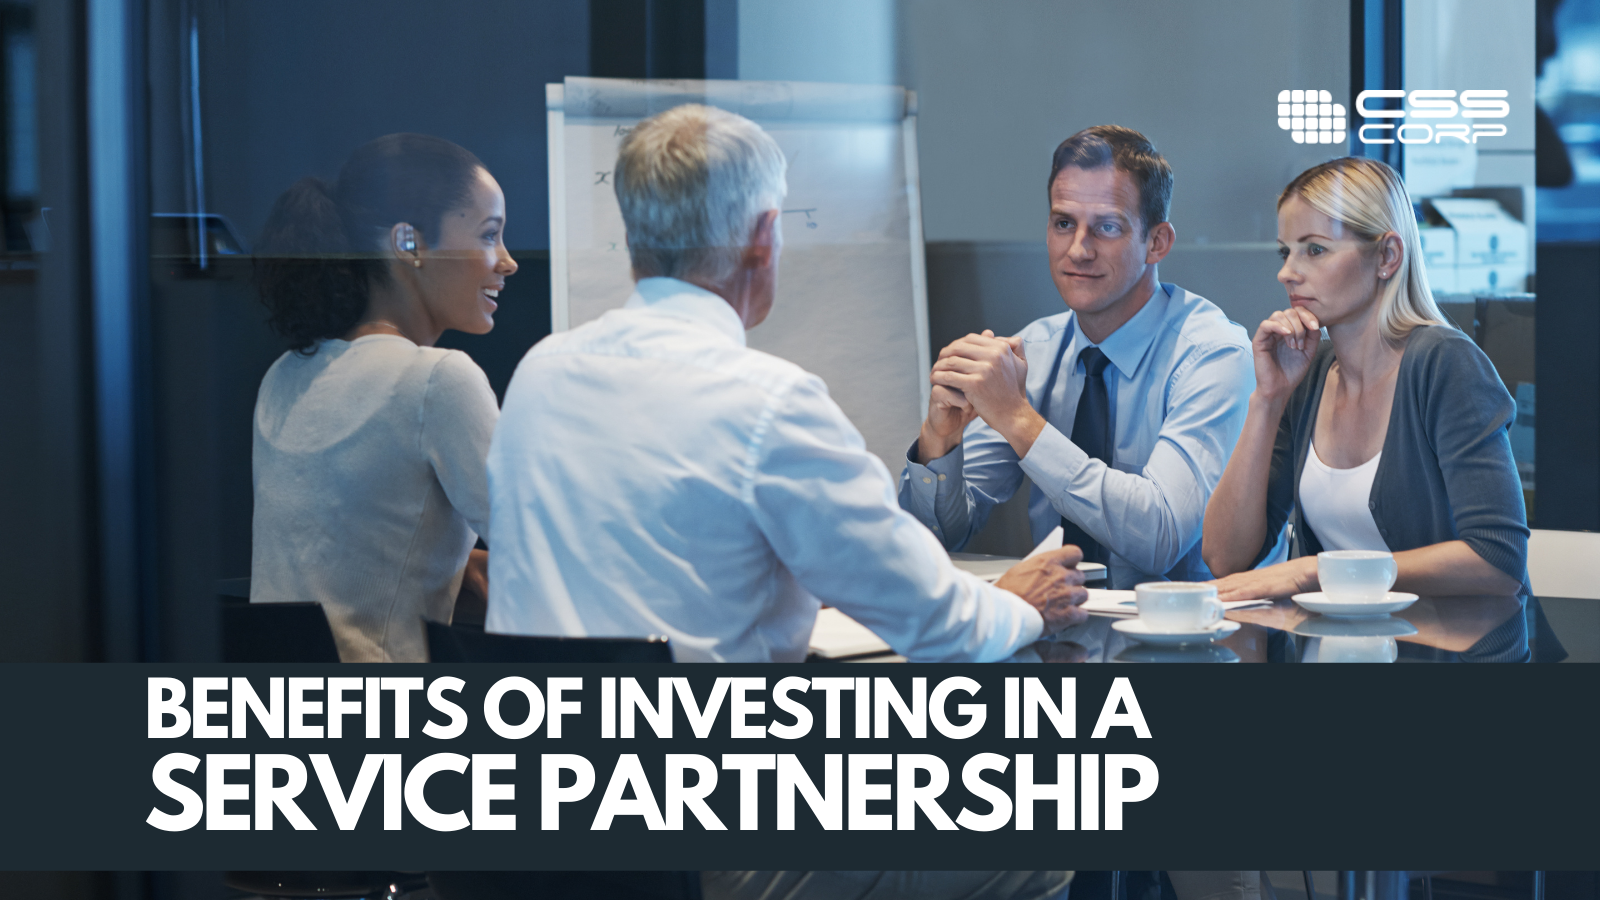 3 Significant Benefits of Investing in a Service Partnership